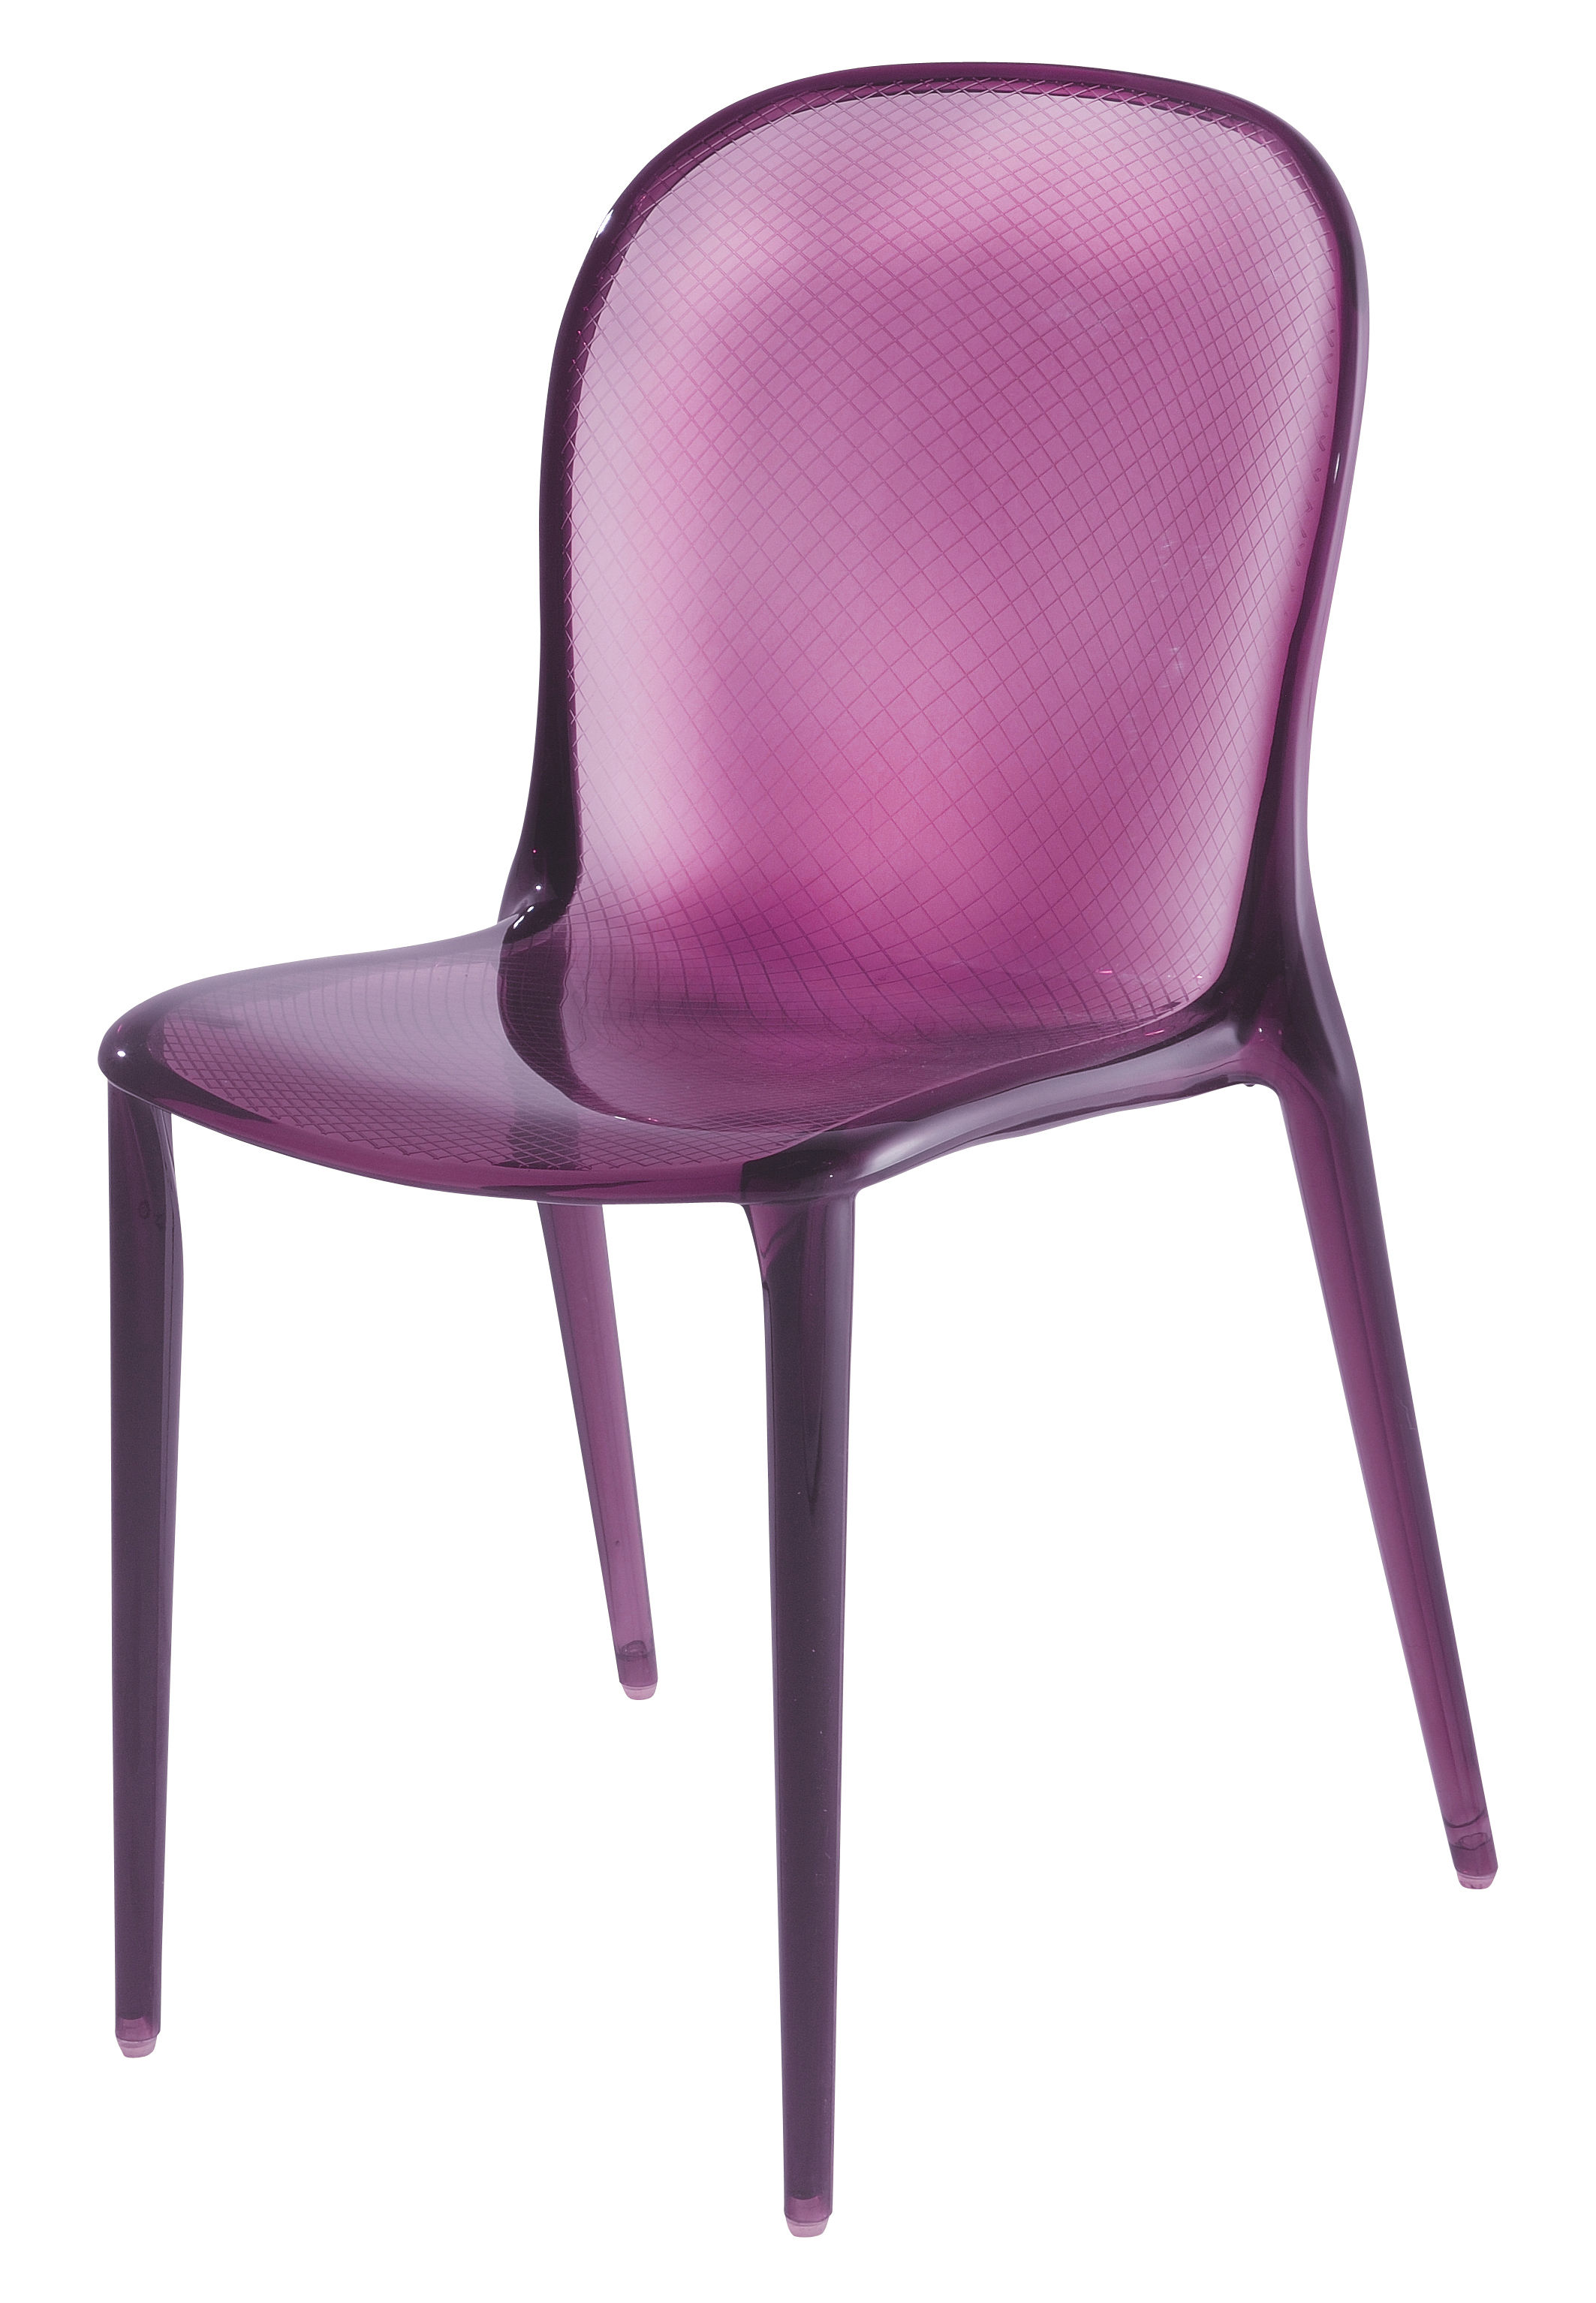 Chaise empilable thalya polycarbonate violet kartell for Chaise empilable